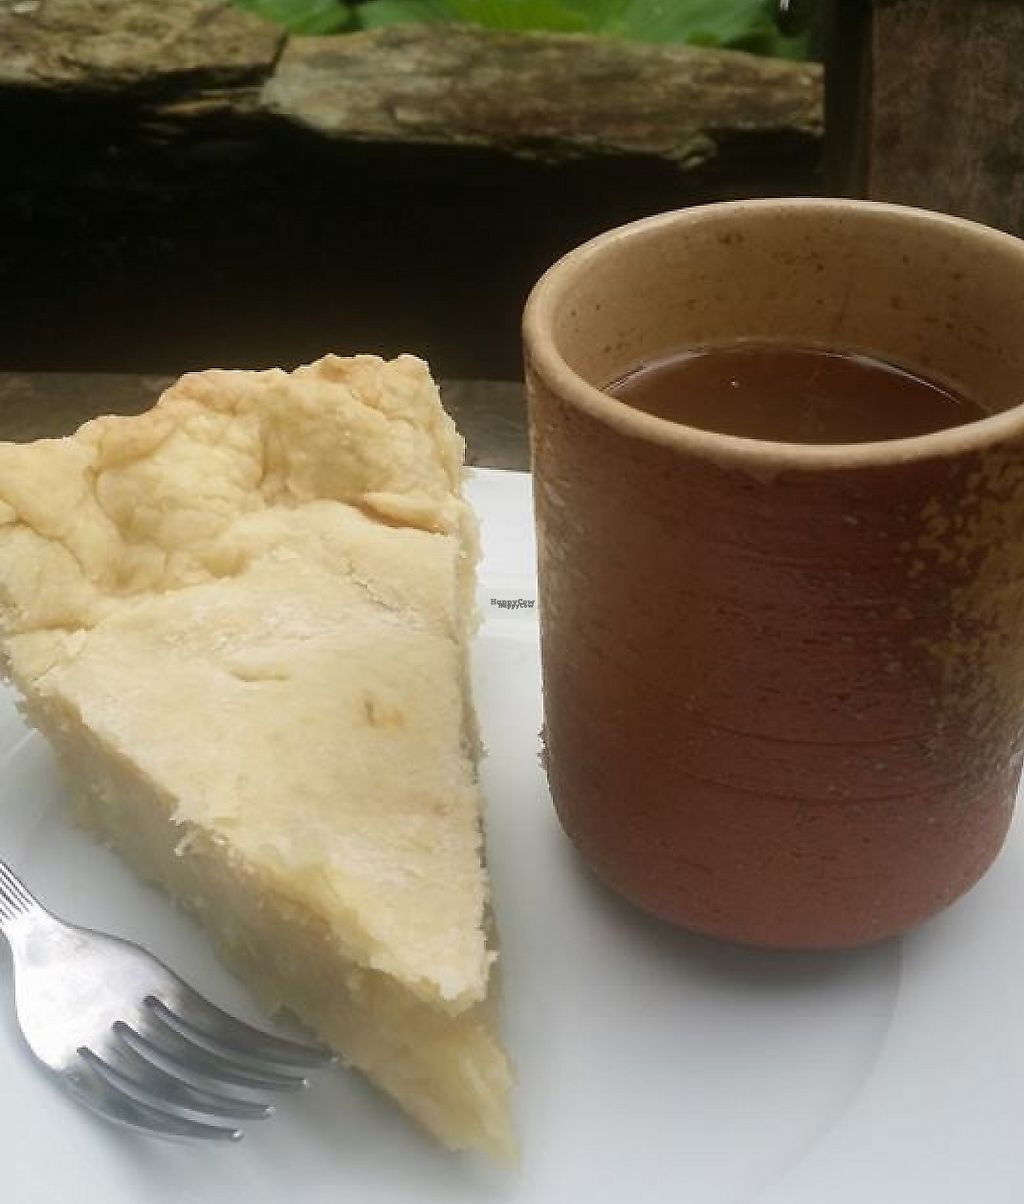 "Photo of Atma VF  by <a href=""/members/profile/supertofu"">supertofu</a> <br/>freshly baked buko pie and hot coffee  <br/> December 27, 2016  - <a href='/contact/abuse/image/84439/204957'>Report</a>"